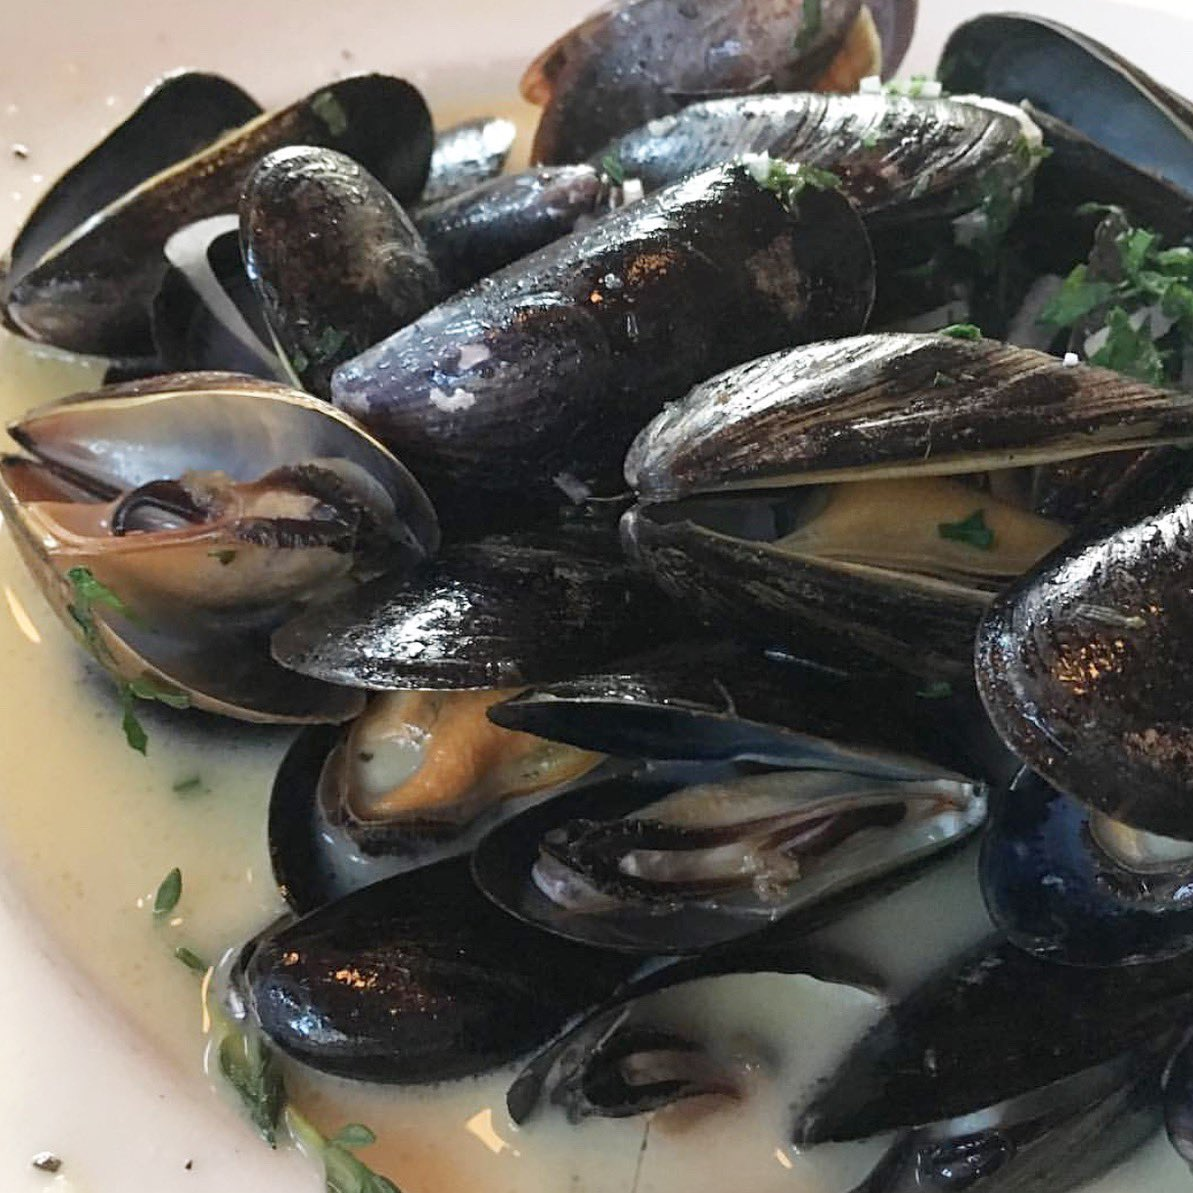 Moules frites. #food #gourmet #gourmetpleasures  #magazine #photooftheday #instagood #instafood #foodporn #picoftheday  #restaurant #chef  #eat  #bestoftheday   #dinner #lunch #breakfast #miami #usa #florida #moules #moulesfrites